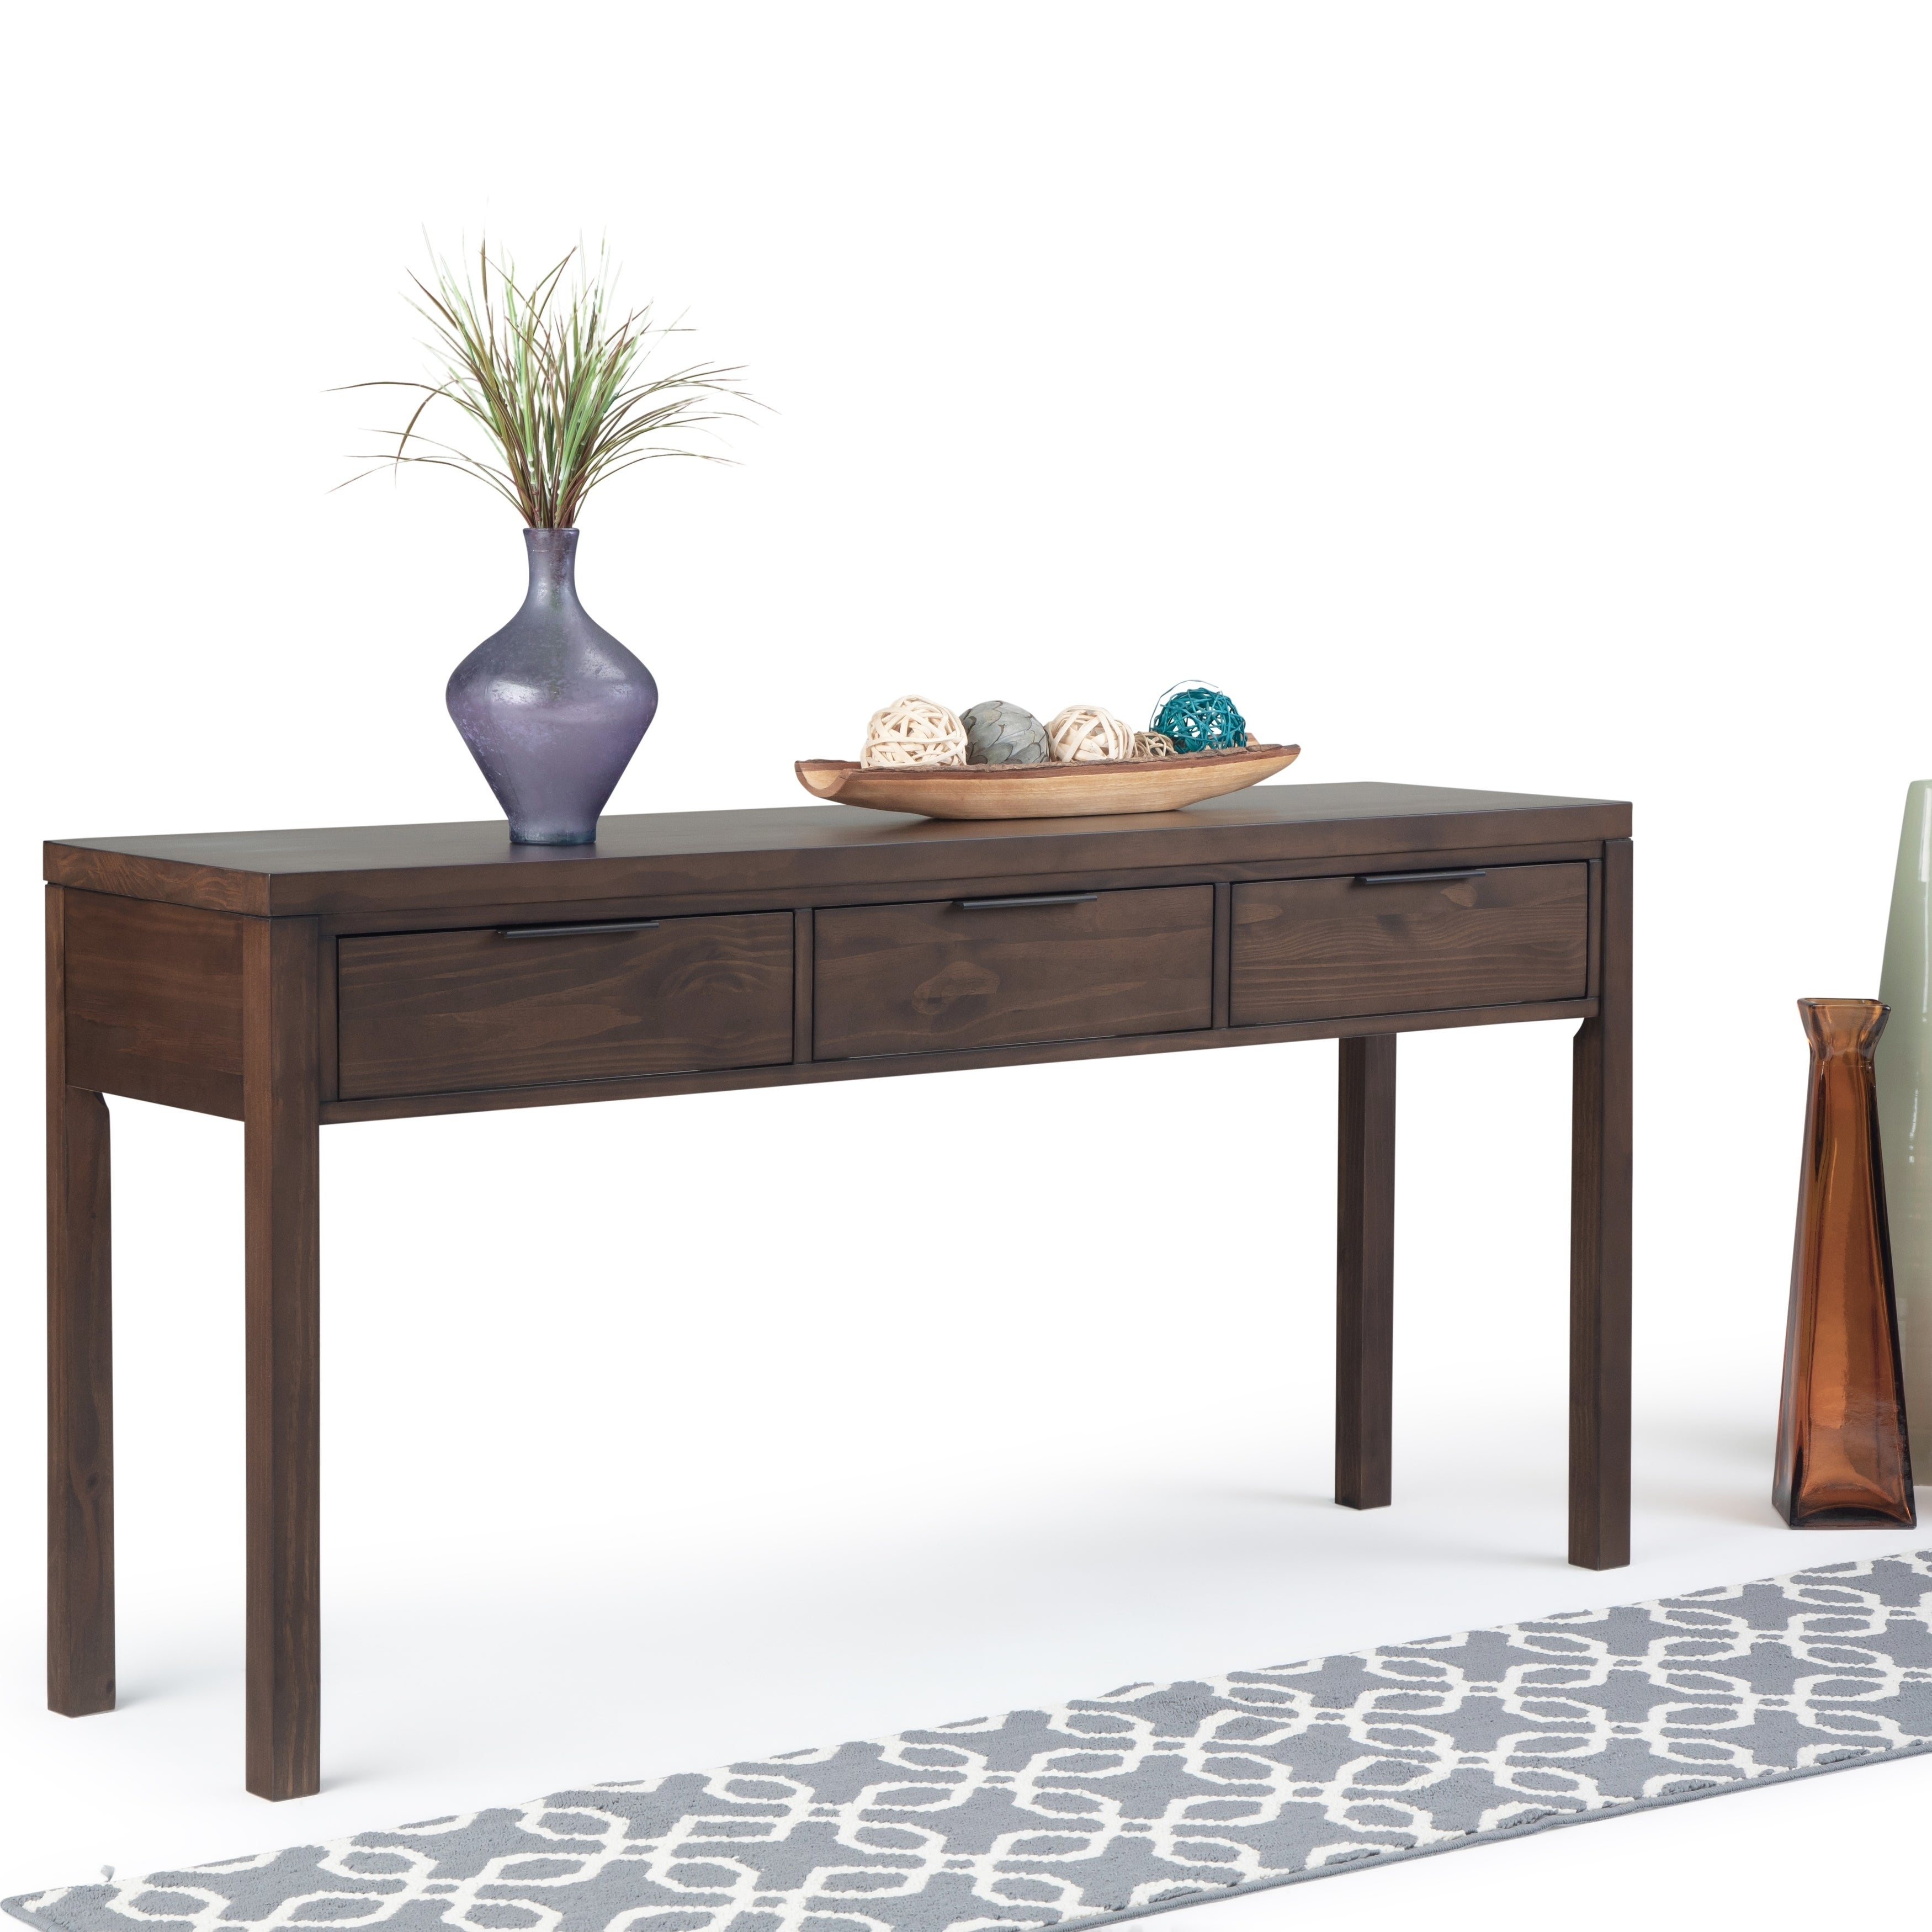 Picture of: Wyndenhall Fabian Solid Wood 60 Inch Wide Contemporary Modern Wide Console Table In Warm Walnut Brown 60 W X 16 D X 30 H On Sale Overstock 26410079